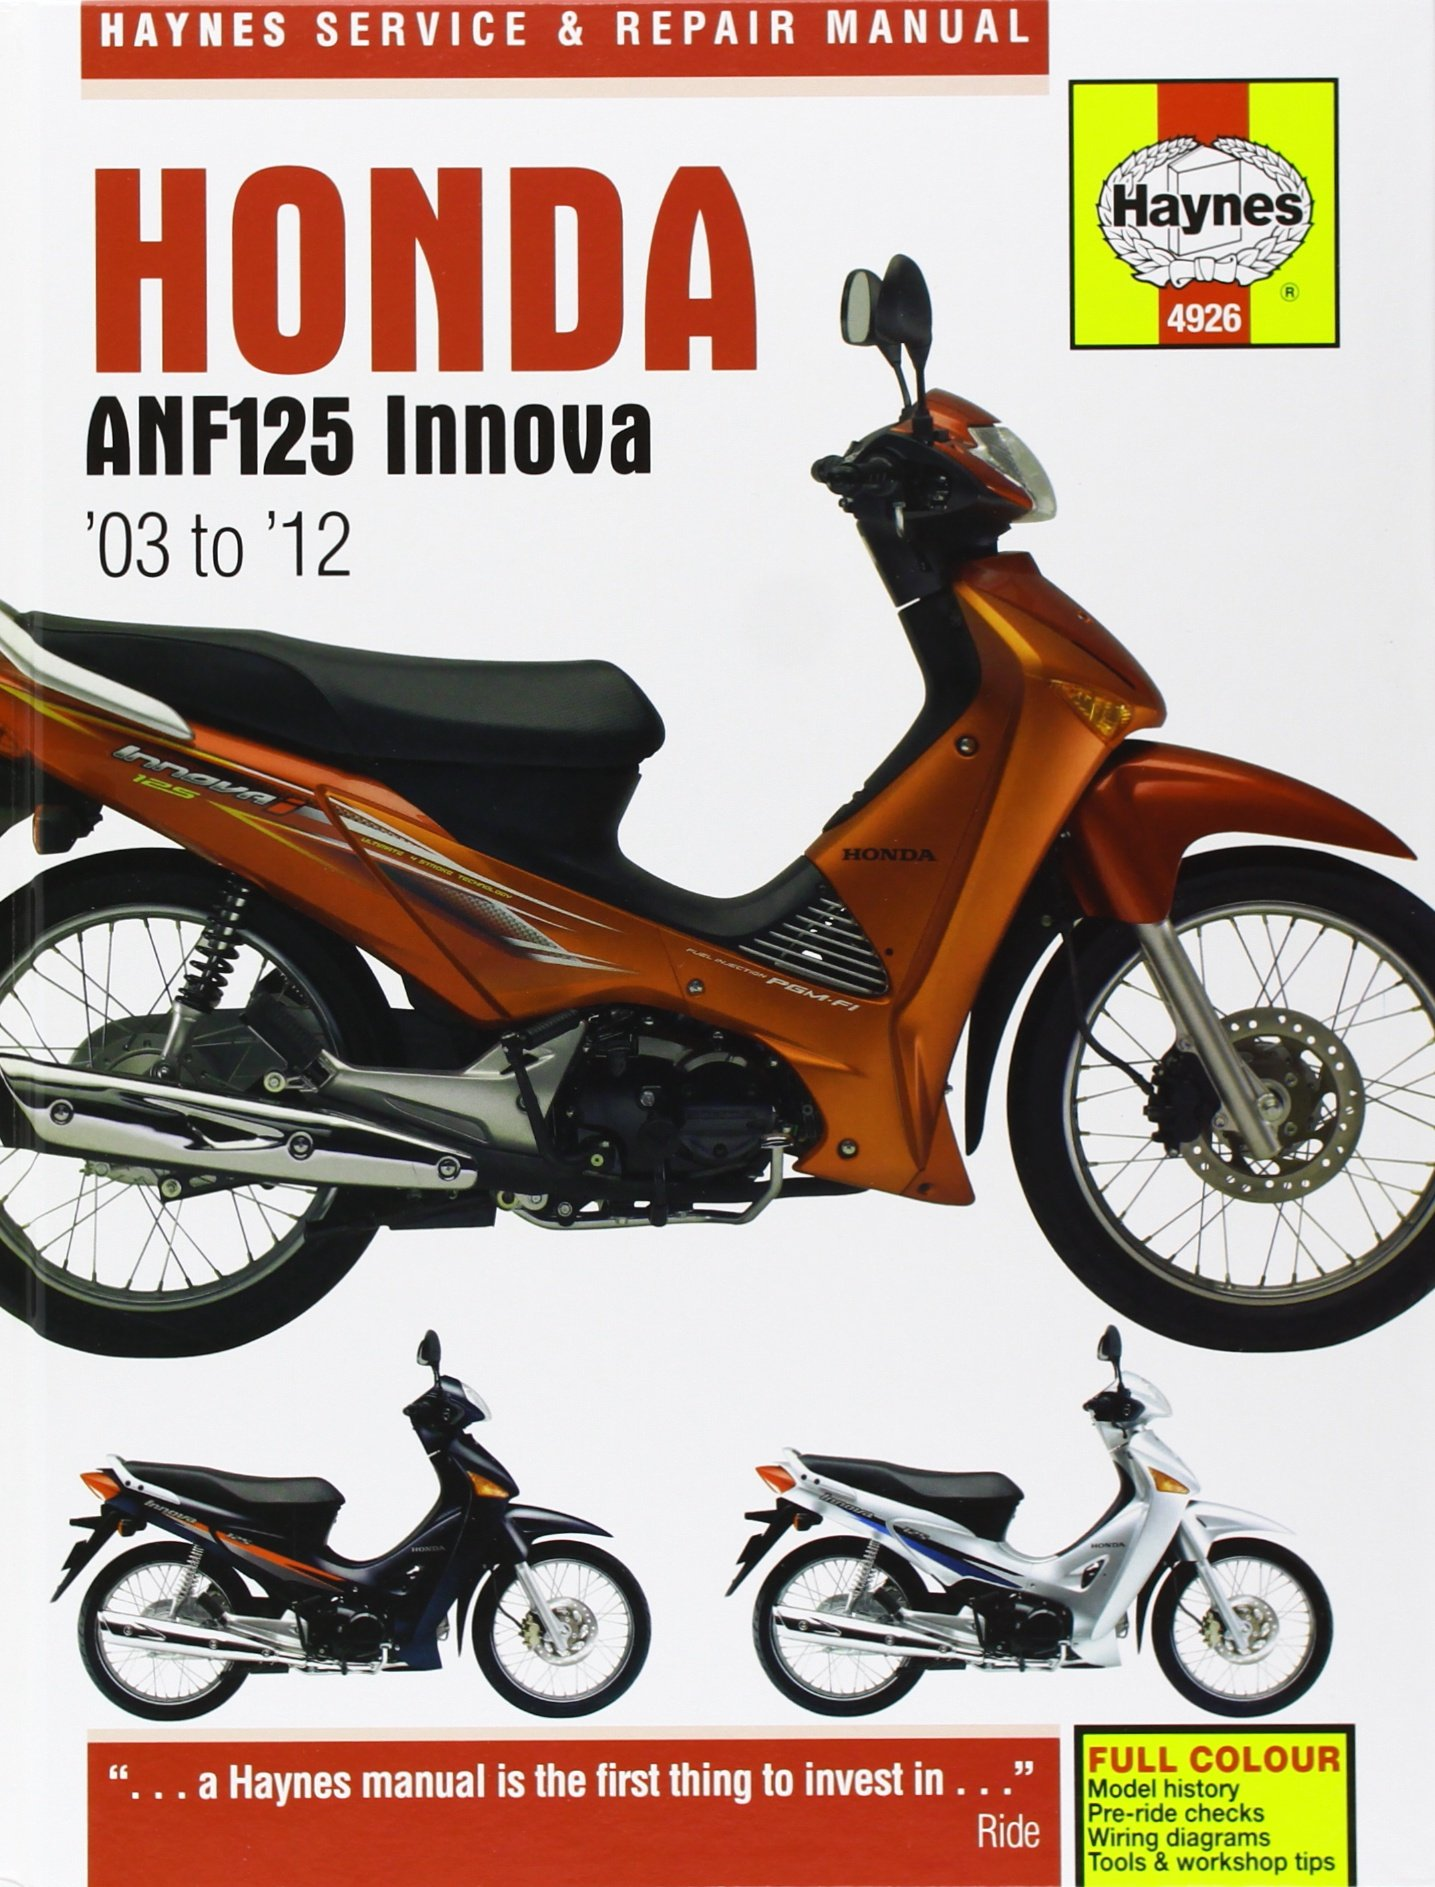 Honda anf125 innova service and repair manual haynes service and honda anf125 innova service and repair manual haynes service and repair manuals matthew coombs 9781844259267 amazon books fandeluxe Choice Image